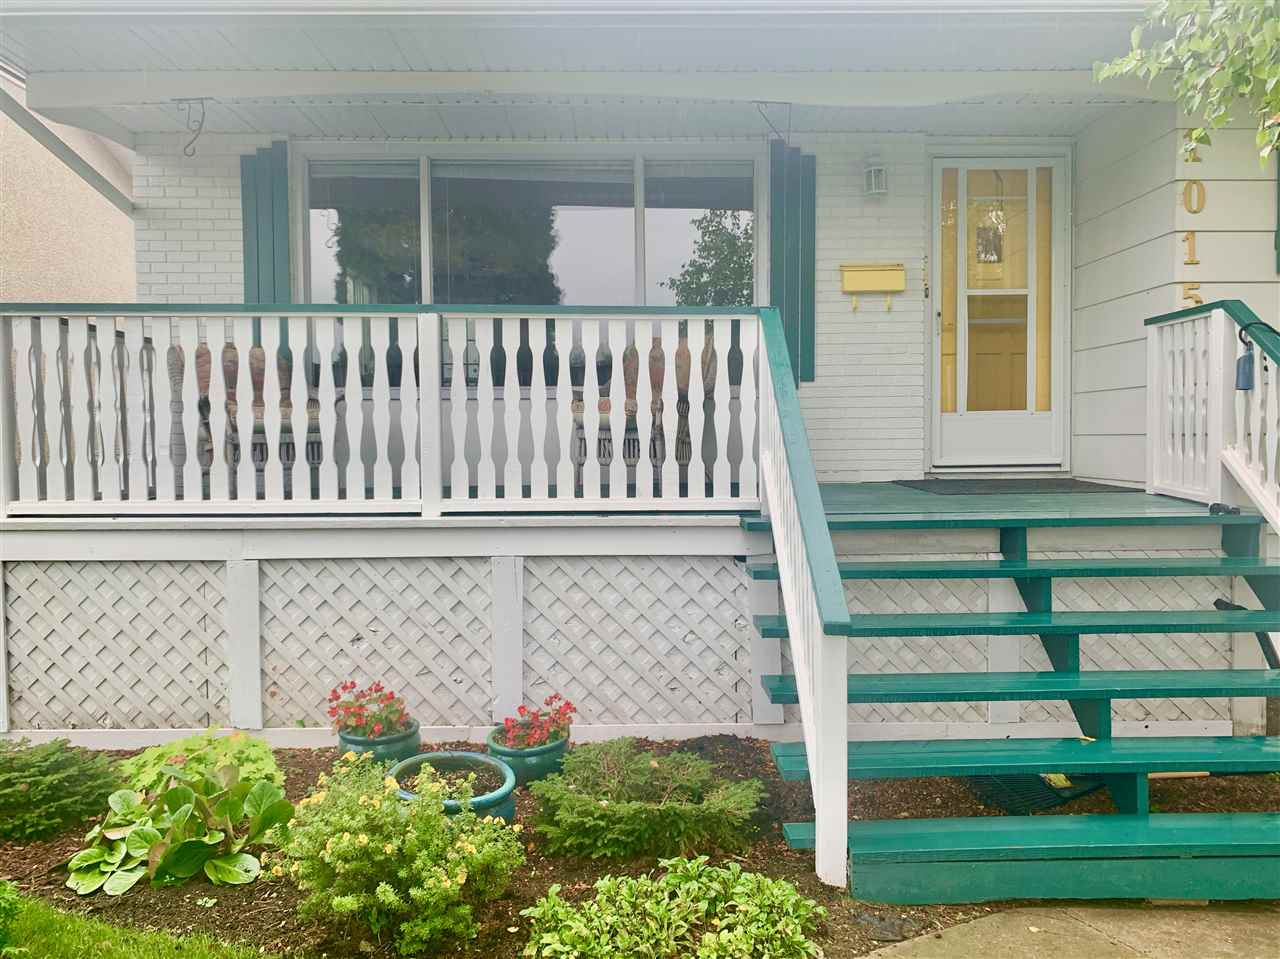 MLS® listing #E4172134 for sale located at 1015 87 Street NW